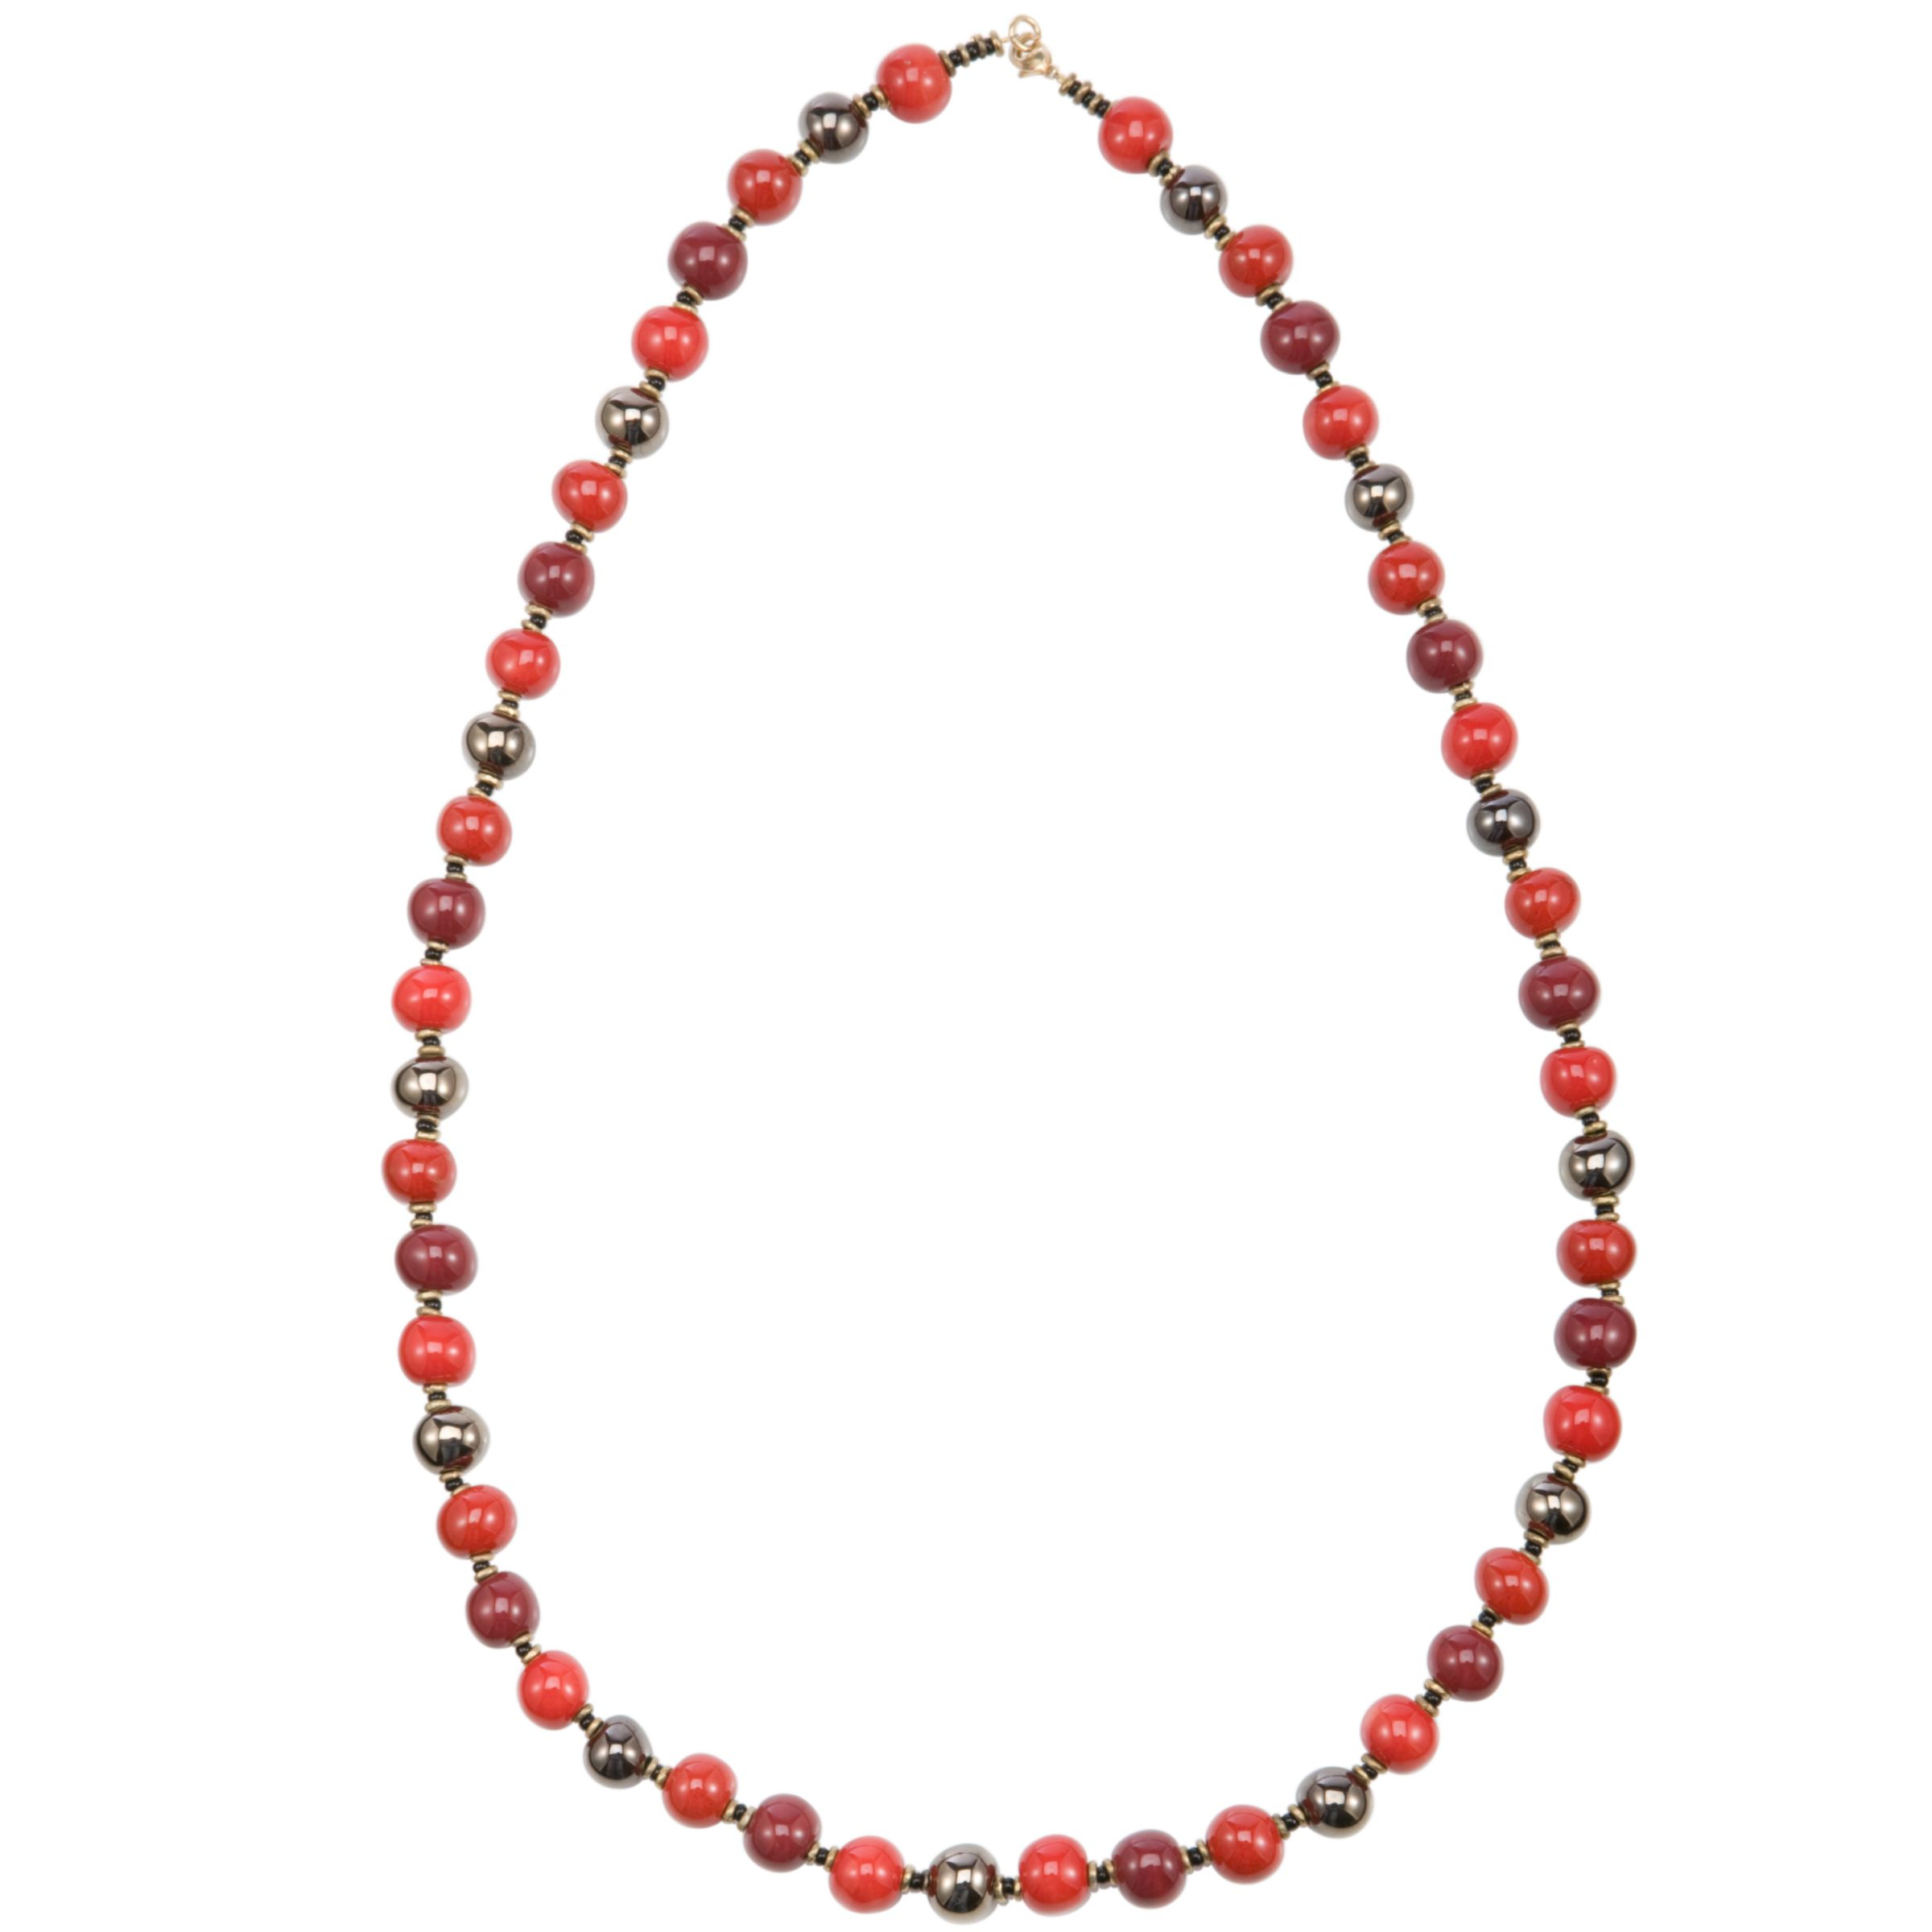 Kazuri Balloon Ceramic Bead Firefly Necklace, Red